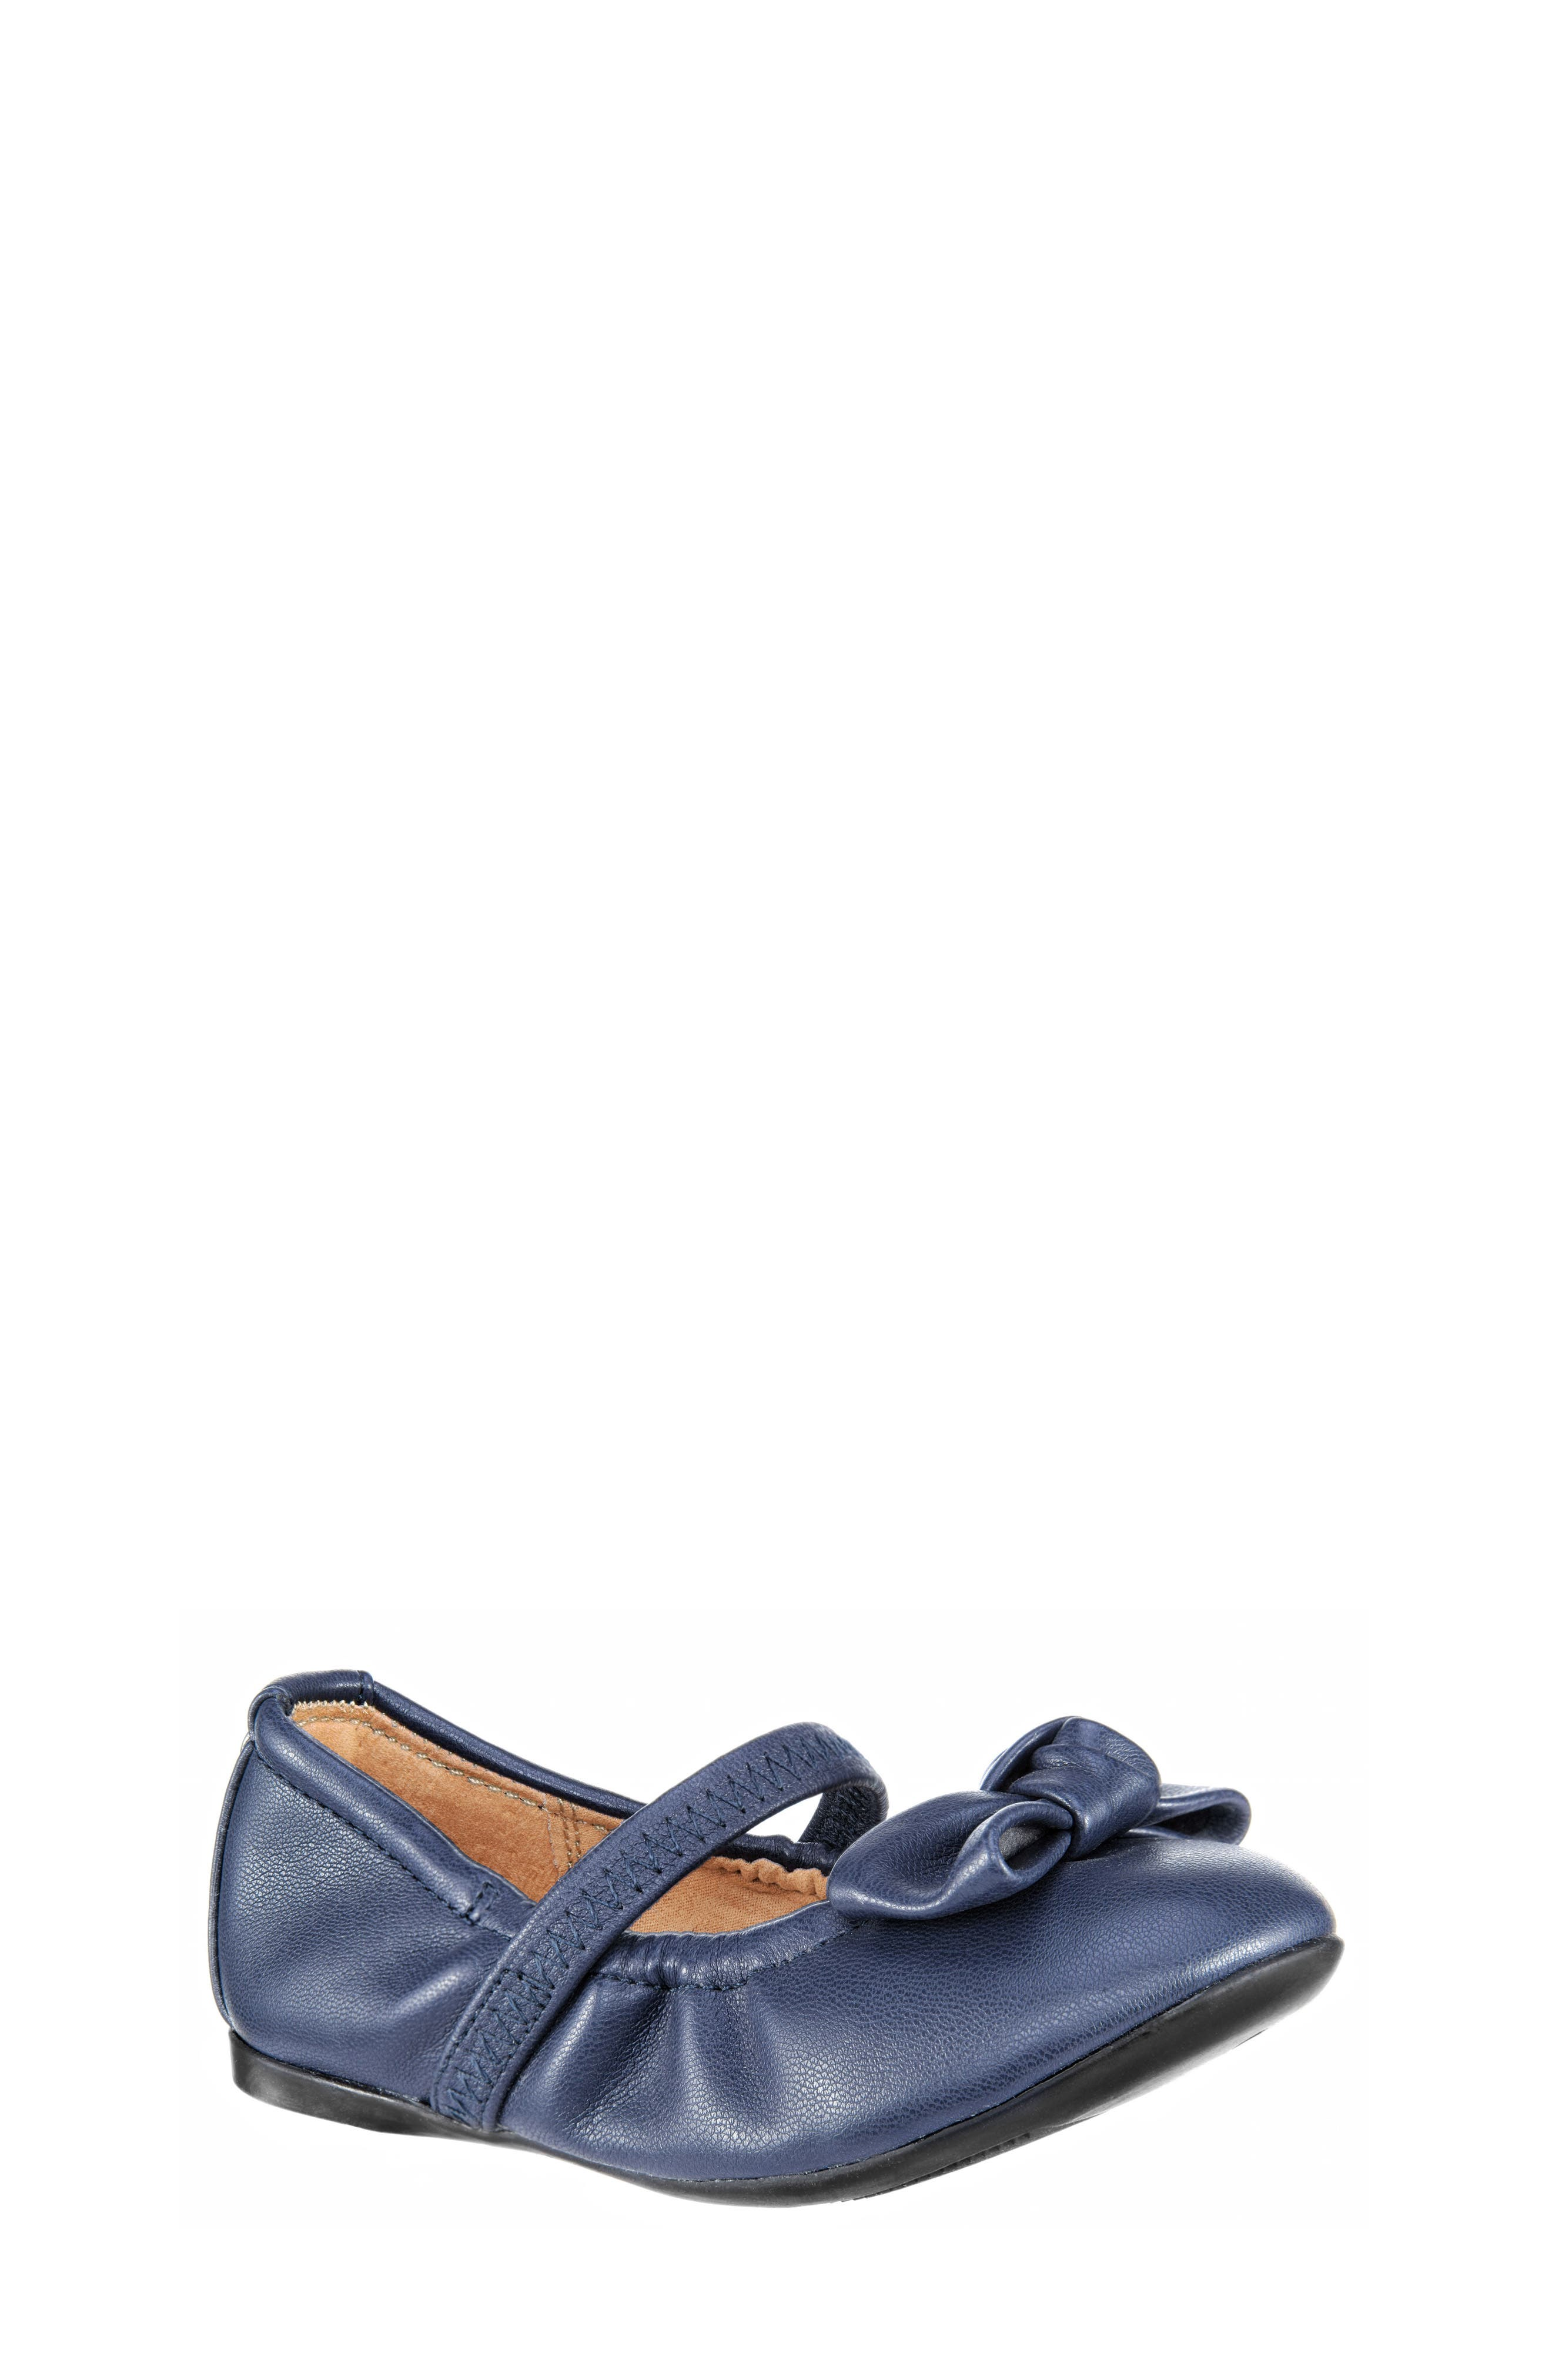 Karla Bow Ballet Flat,                             Main thumbnail 1, color,                             Navy Smooth Blue